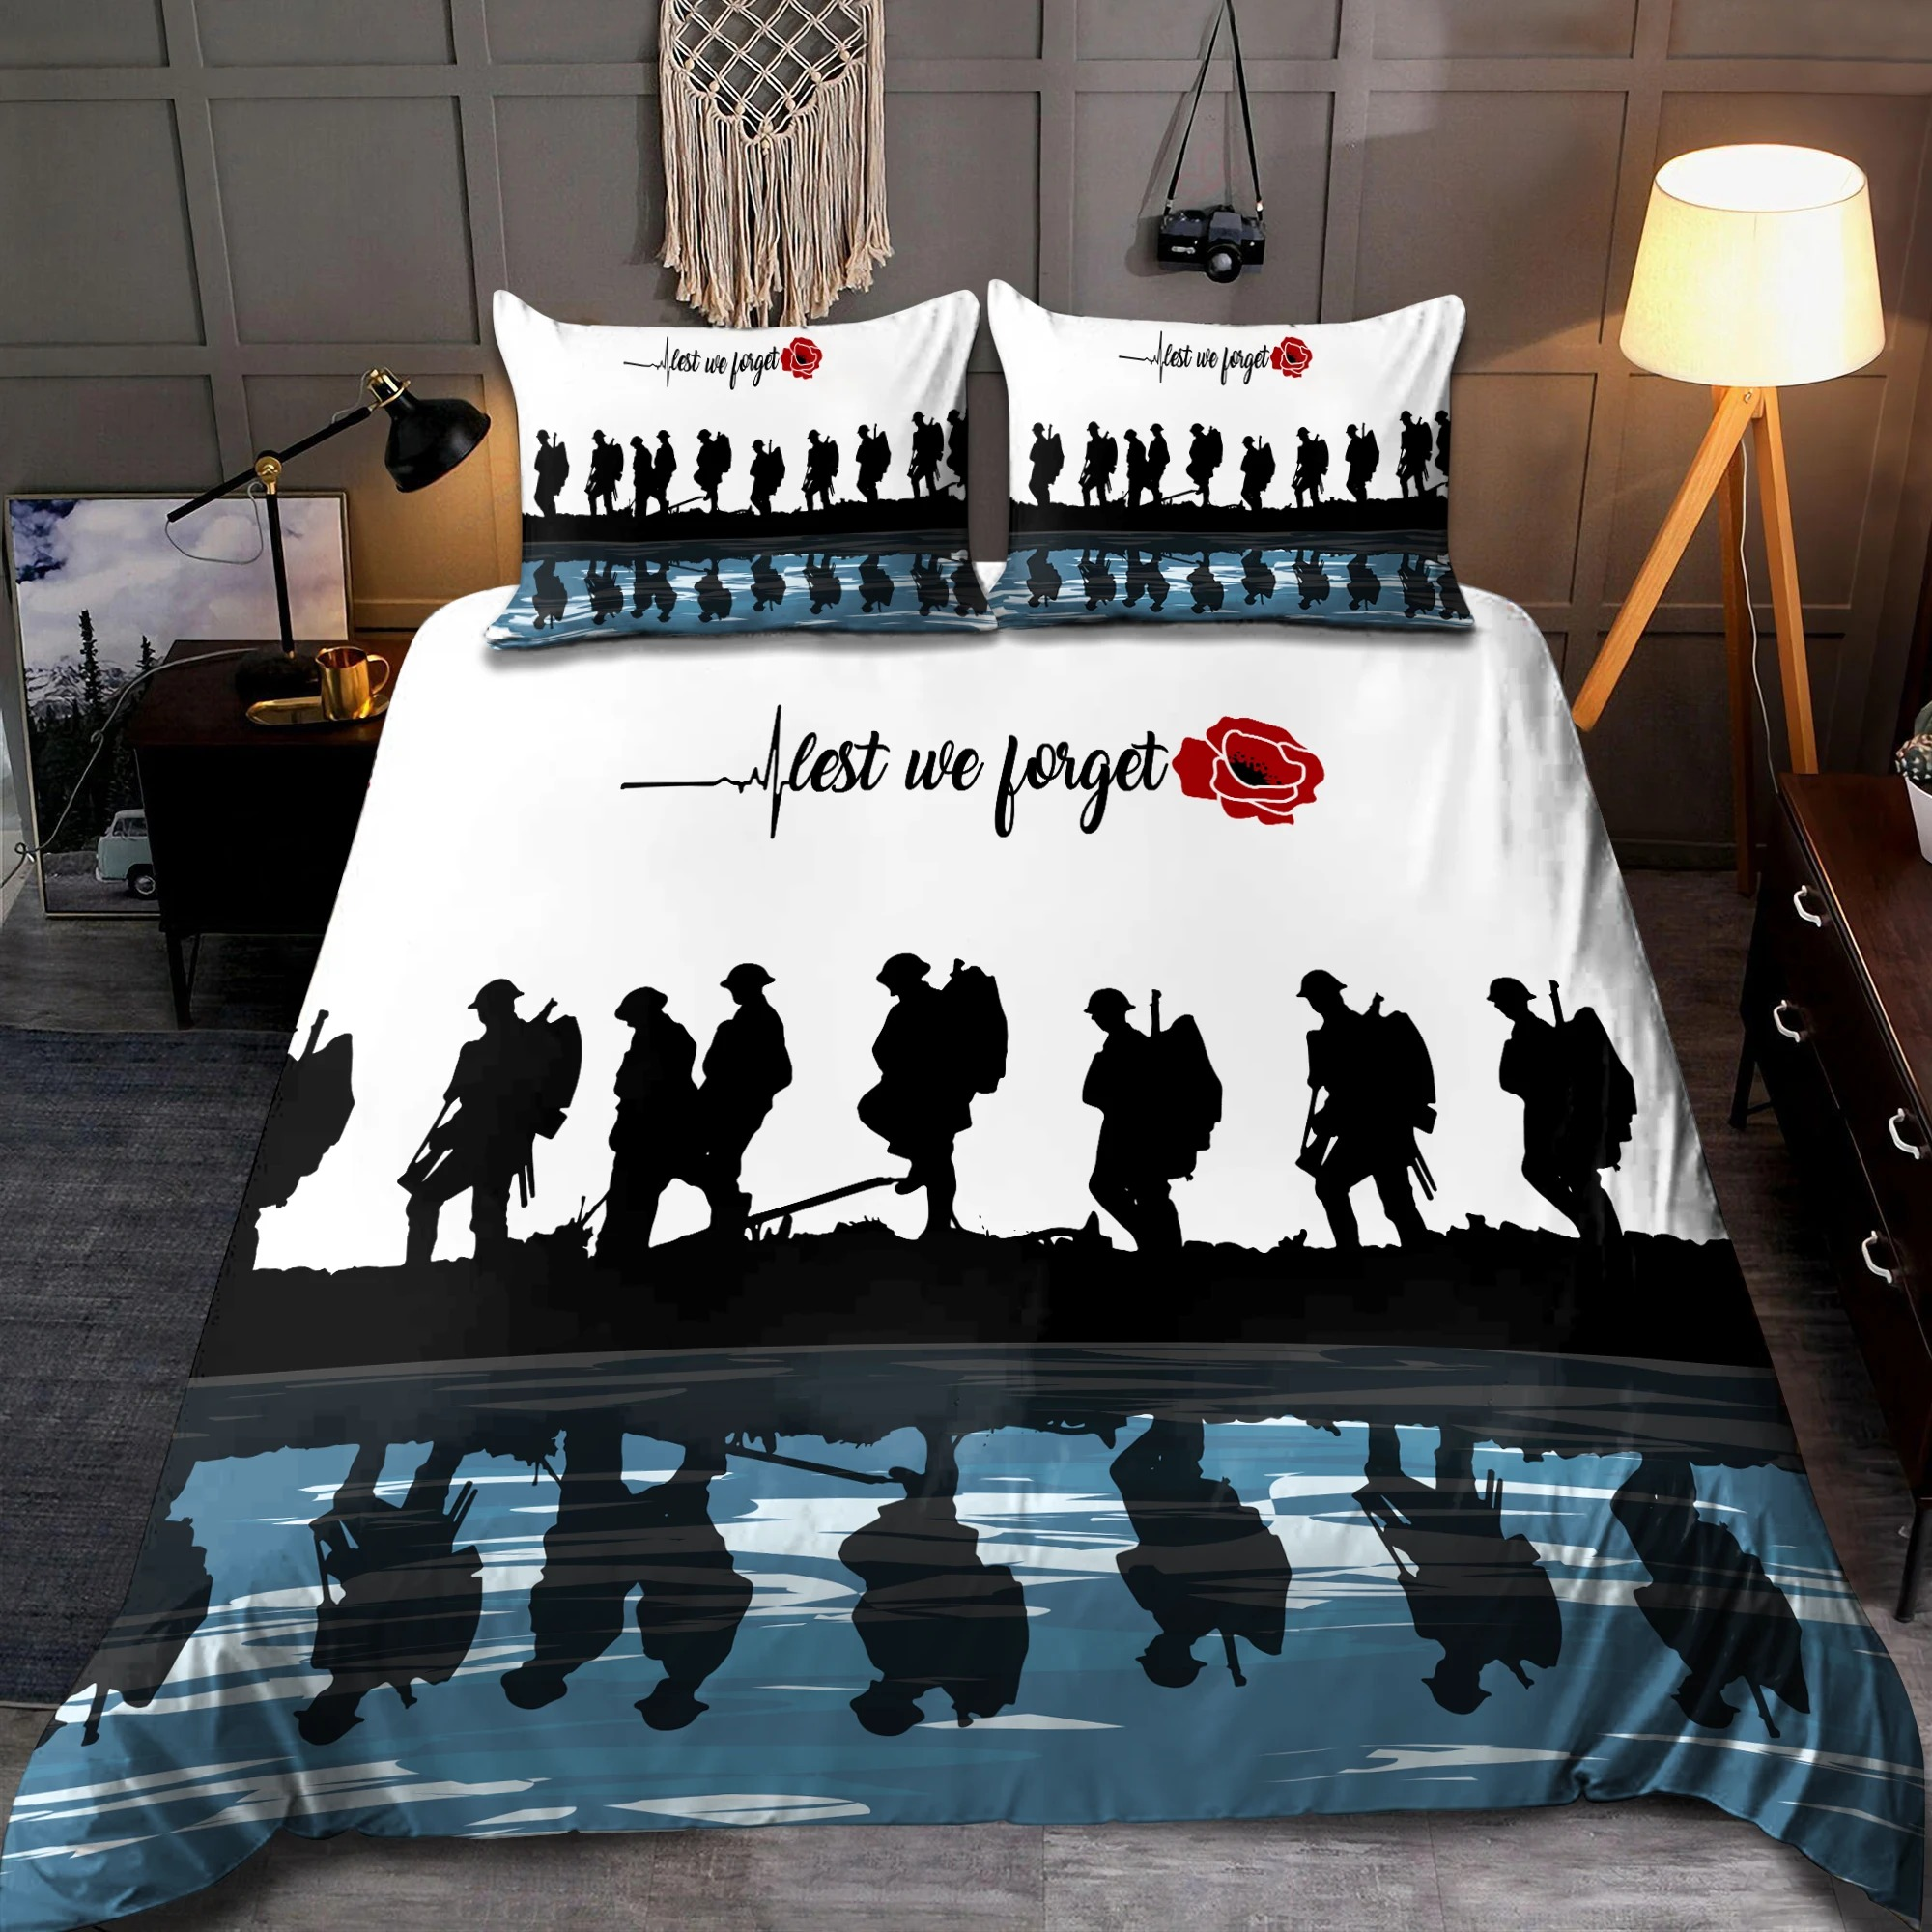 UK Veteran Let we forget honor the fallen bedding set3